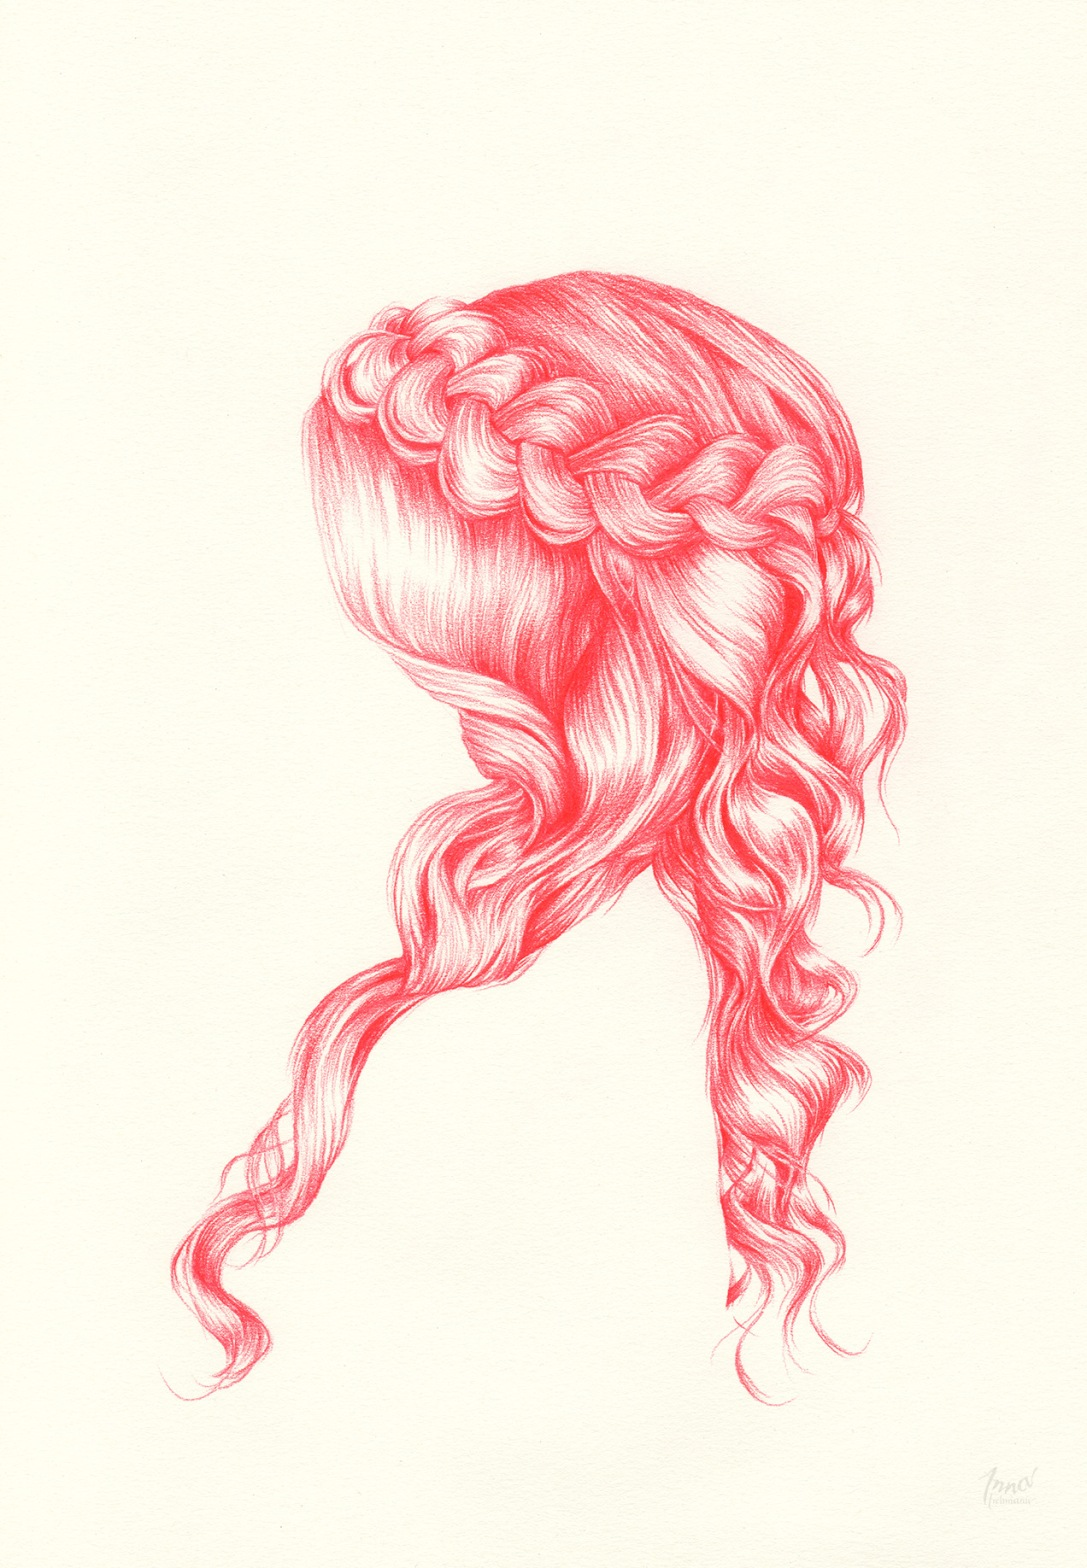 BRAIDED II | pencil on paper